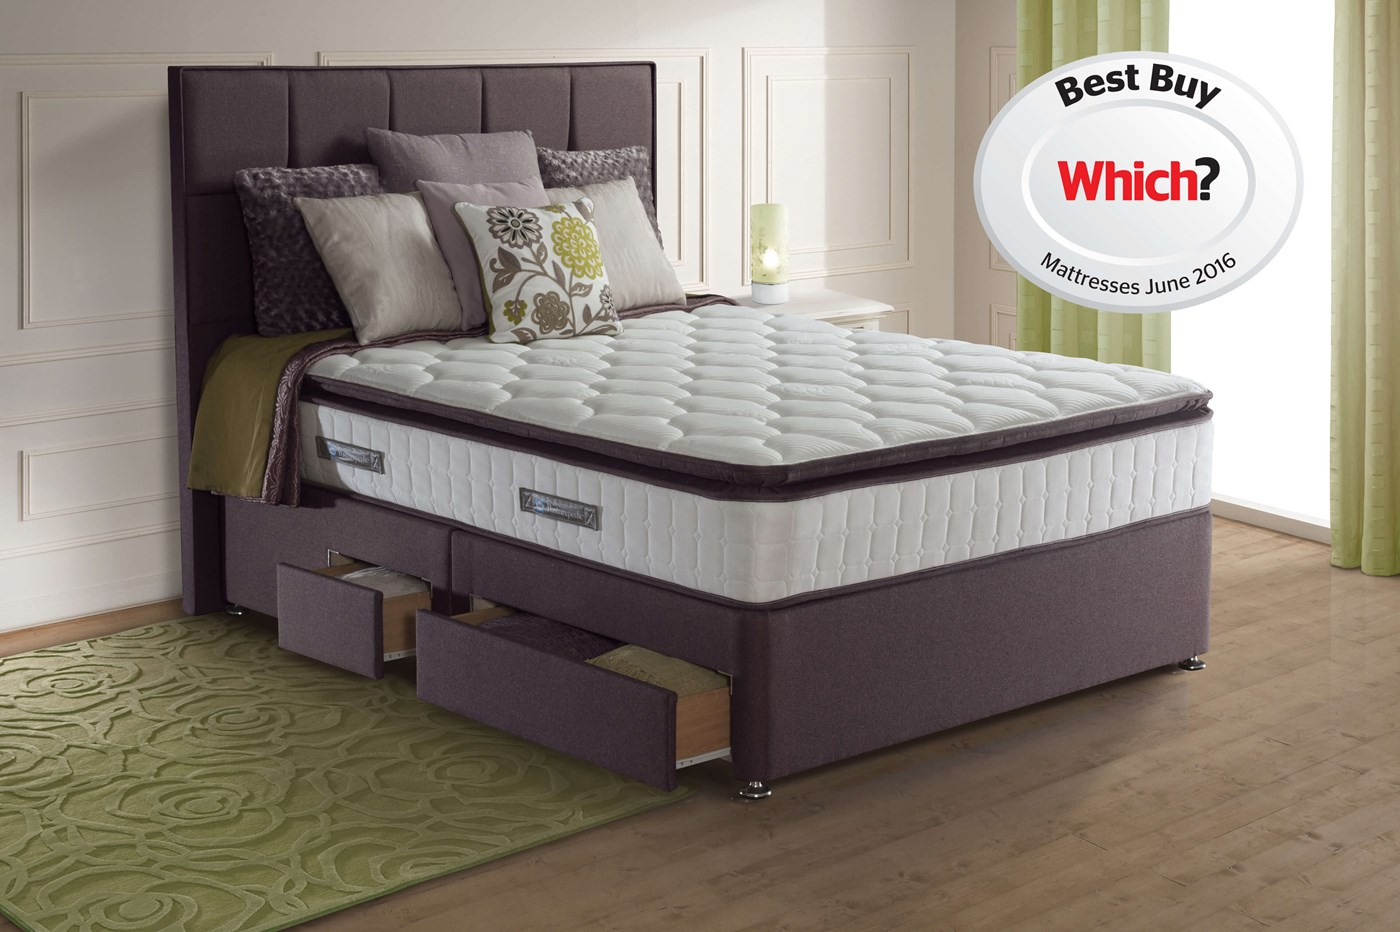 Lindisfarne Headboard Beds Sealy Posturepedic